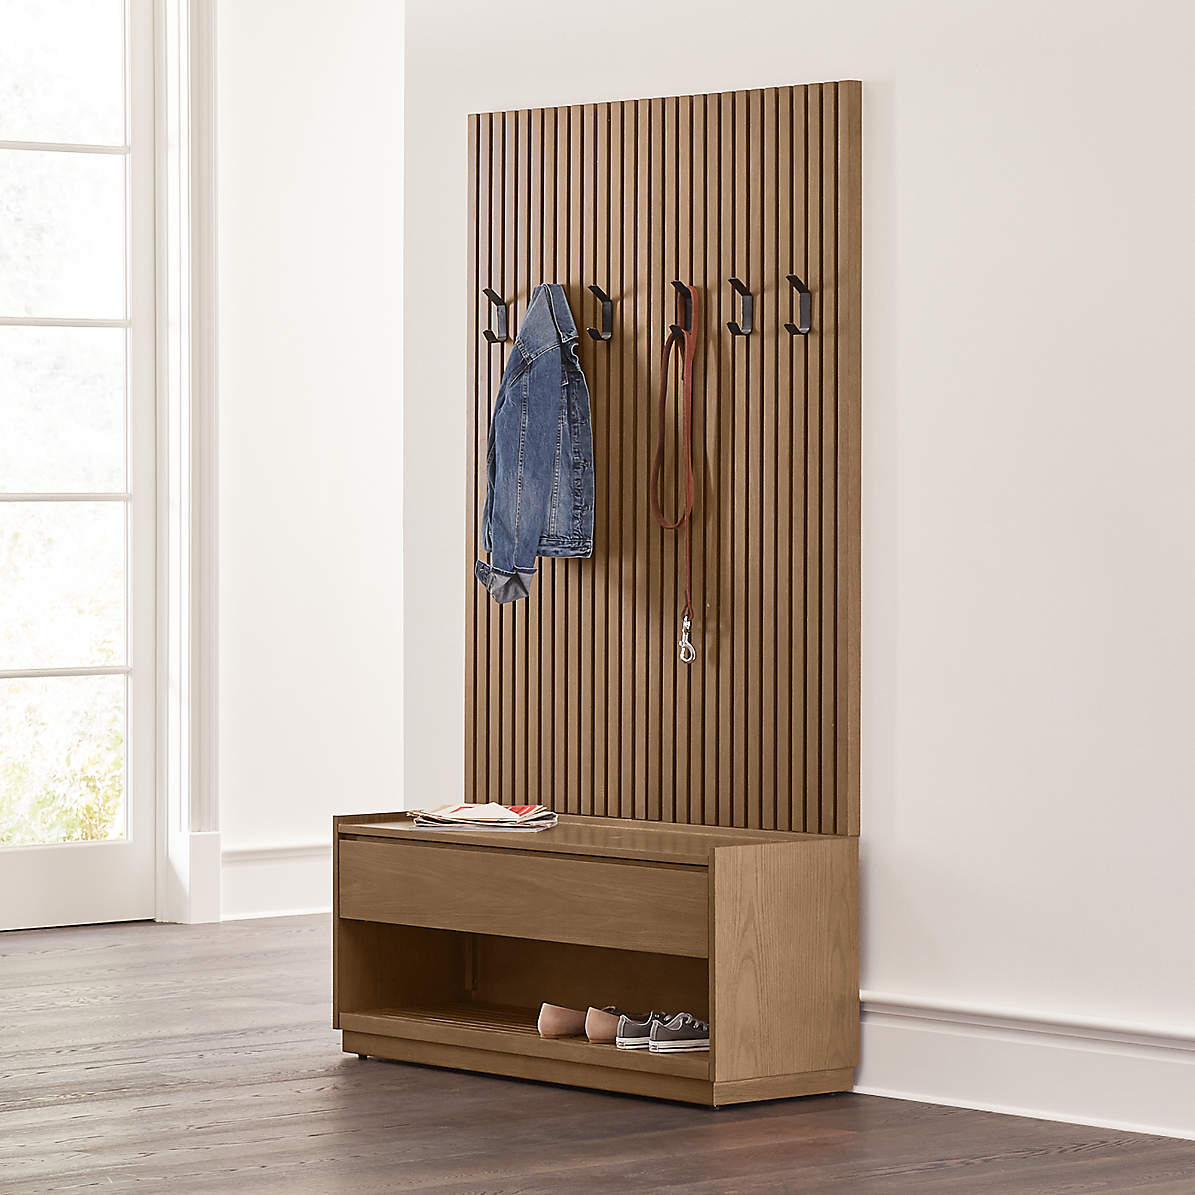 Batten Storage Bench And Panel Set Reviews Crate And Barrel